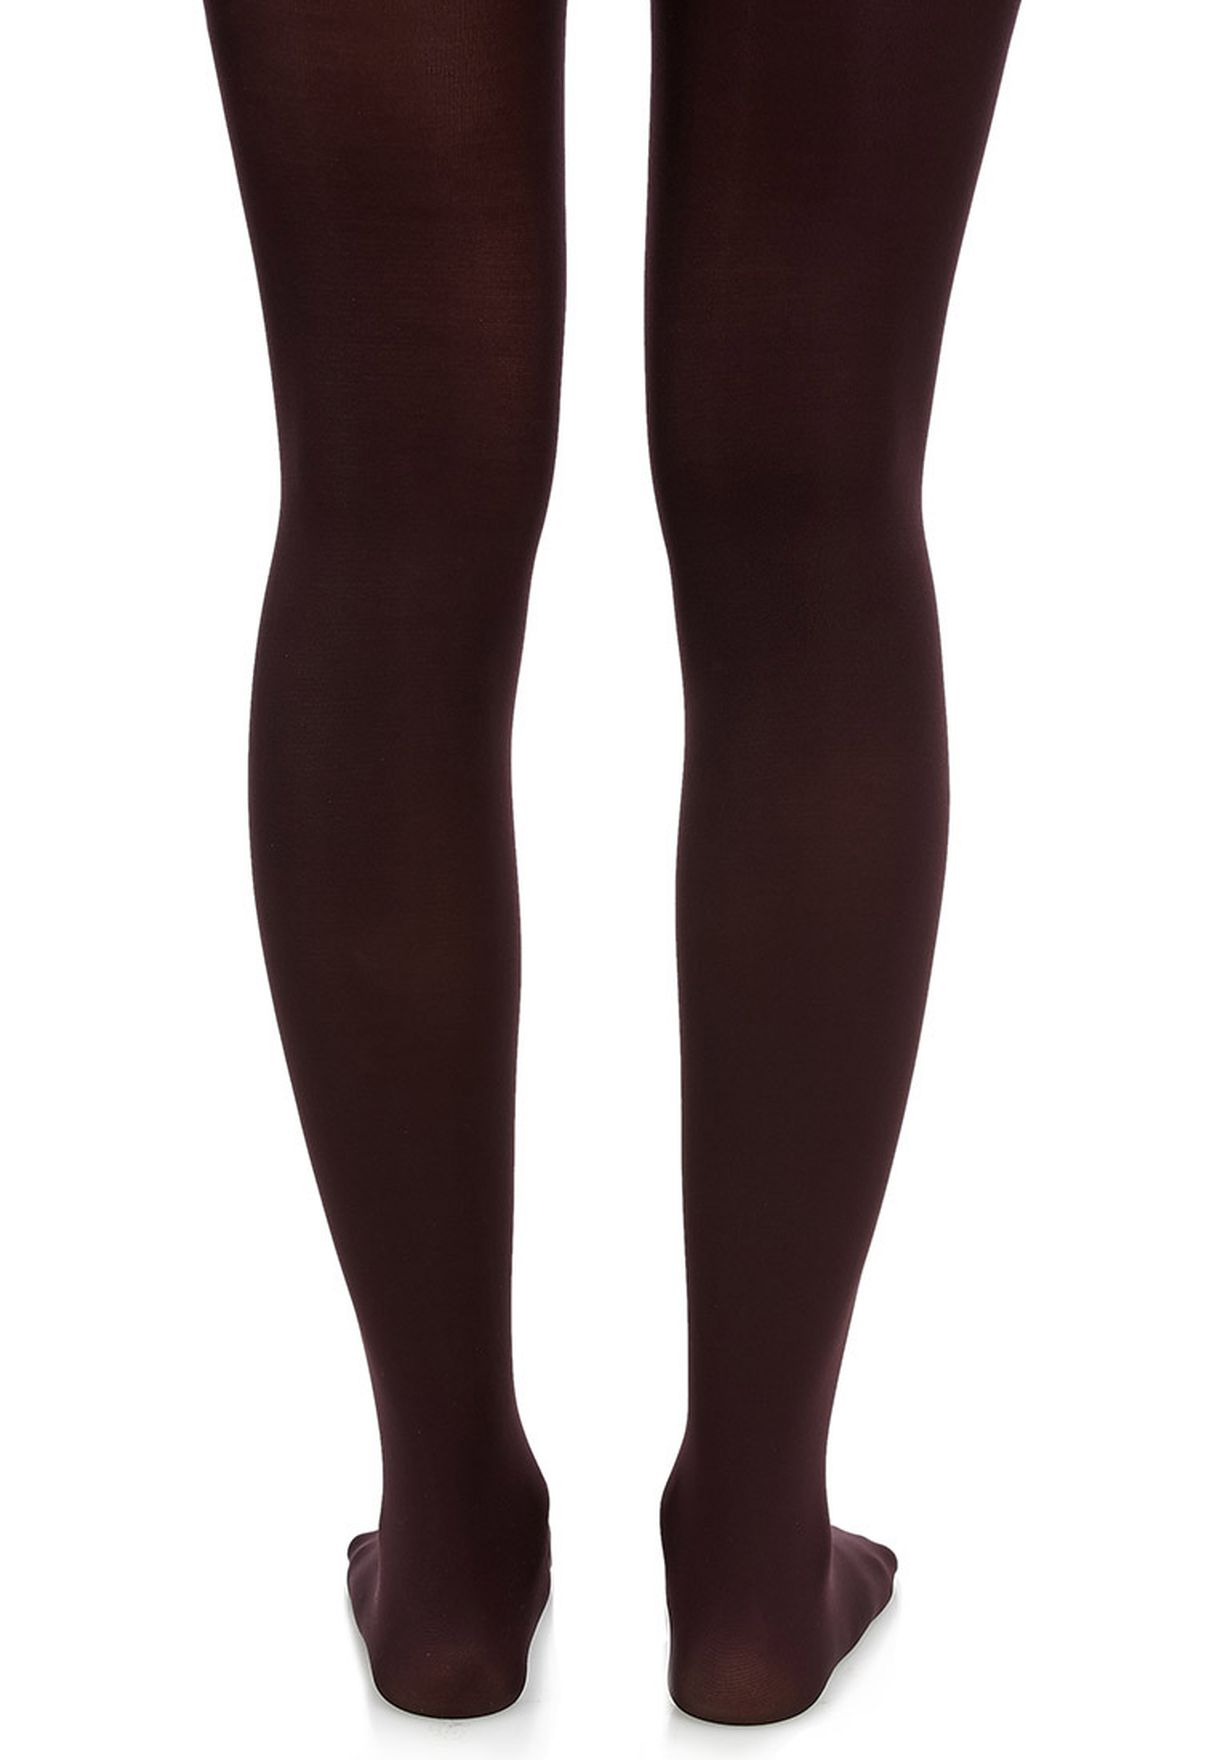 35801edd6 Shop Gipsy purple Coloured Tights for Women in UAE - GI314AT96PYL